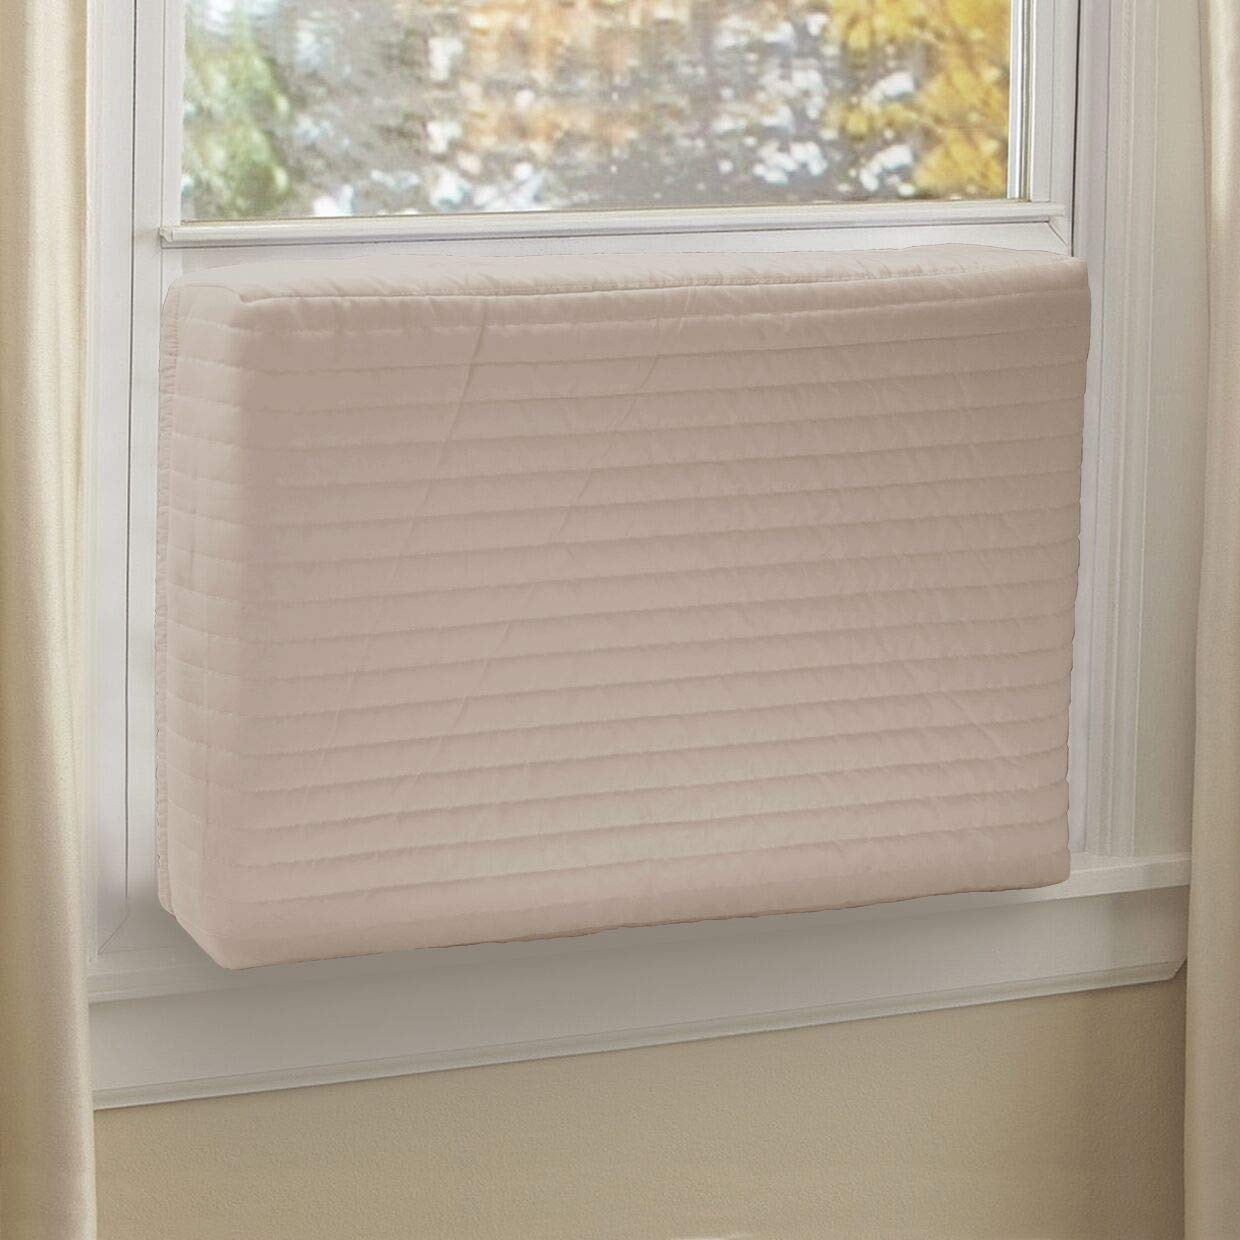 Foozet Indoor Air Conditioner Cover Double Insulation, XS Foozet Innovations